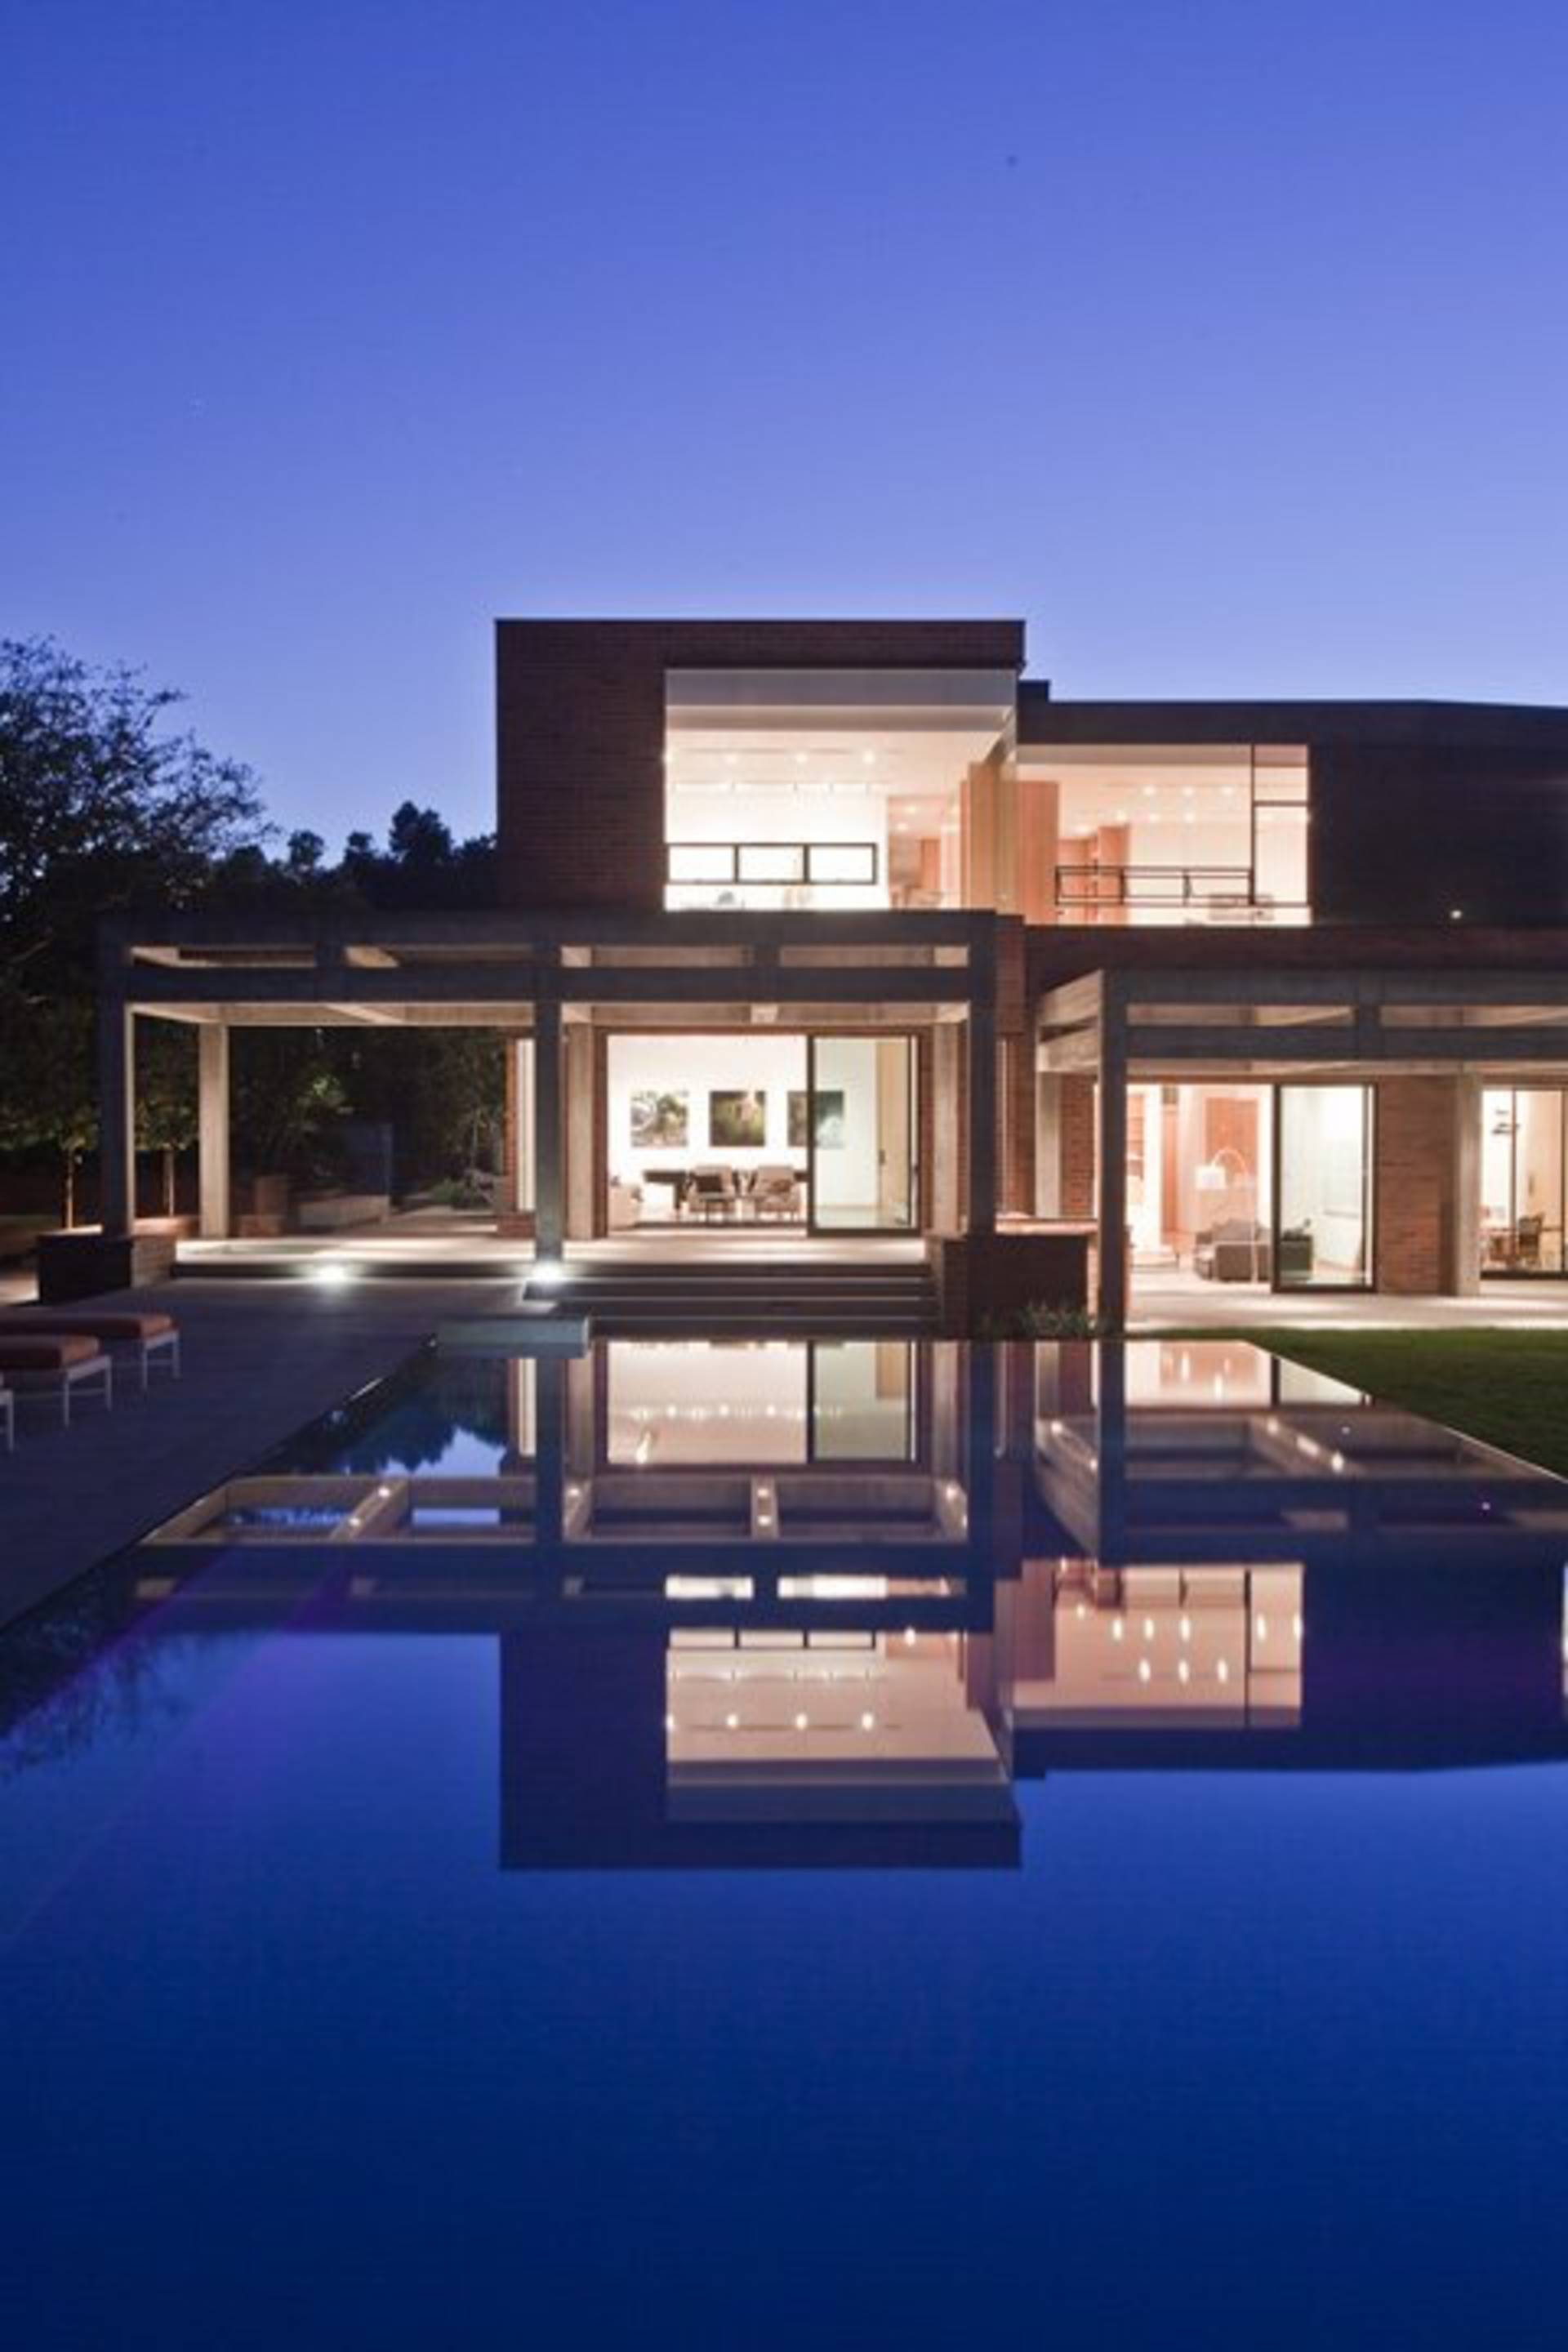 Elegant house design in los angeles by assembledge home for Perfect design house